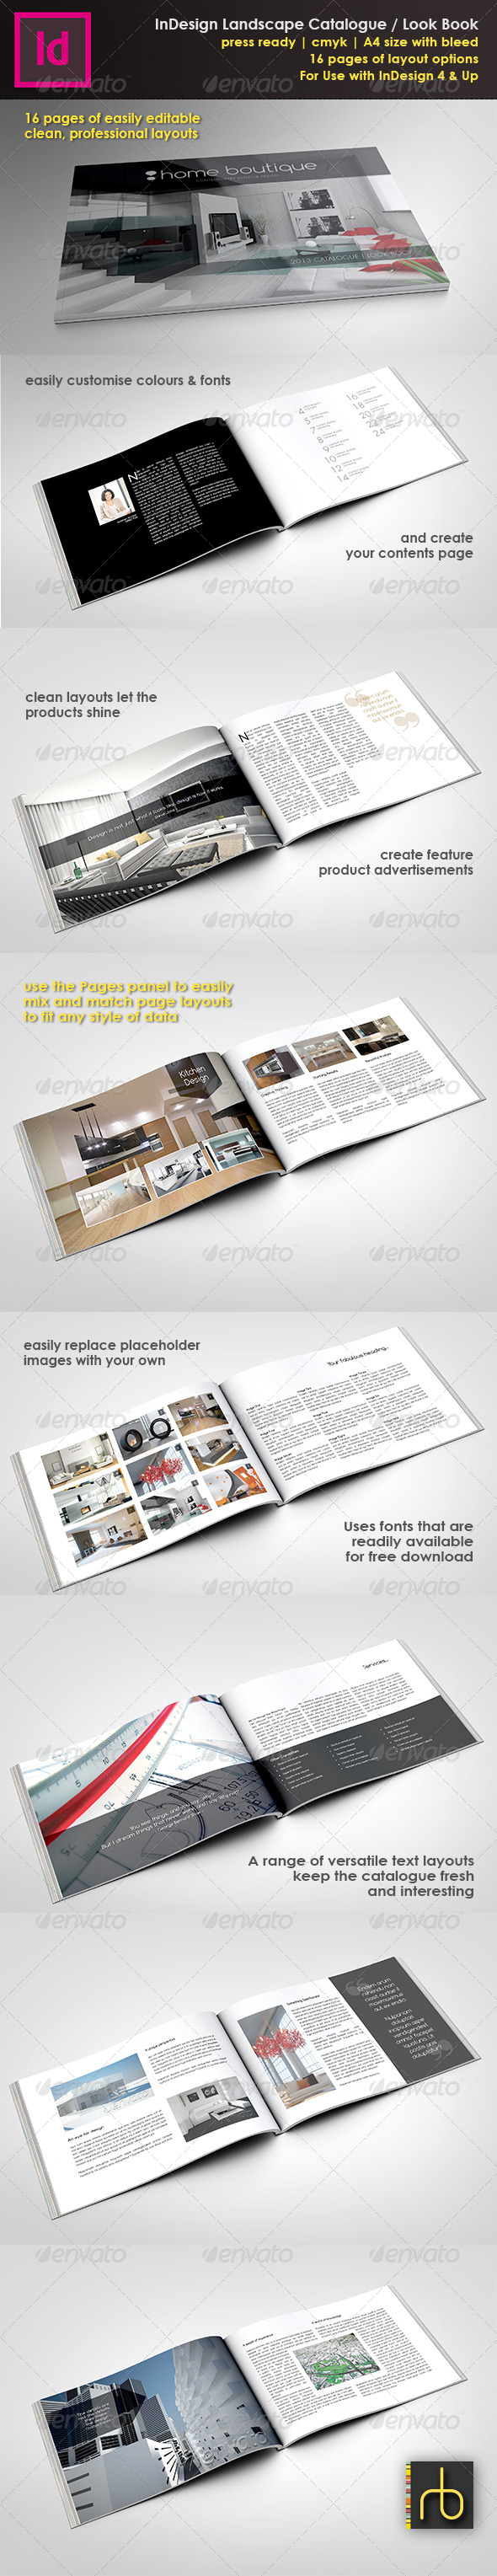 A4 Landscape Brochure/Look Book InDesign Template by ReneeBuckley ...